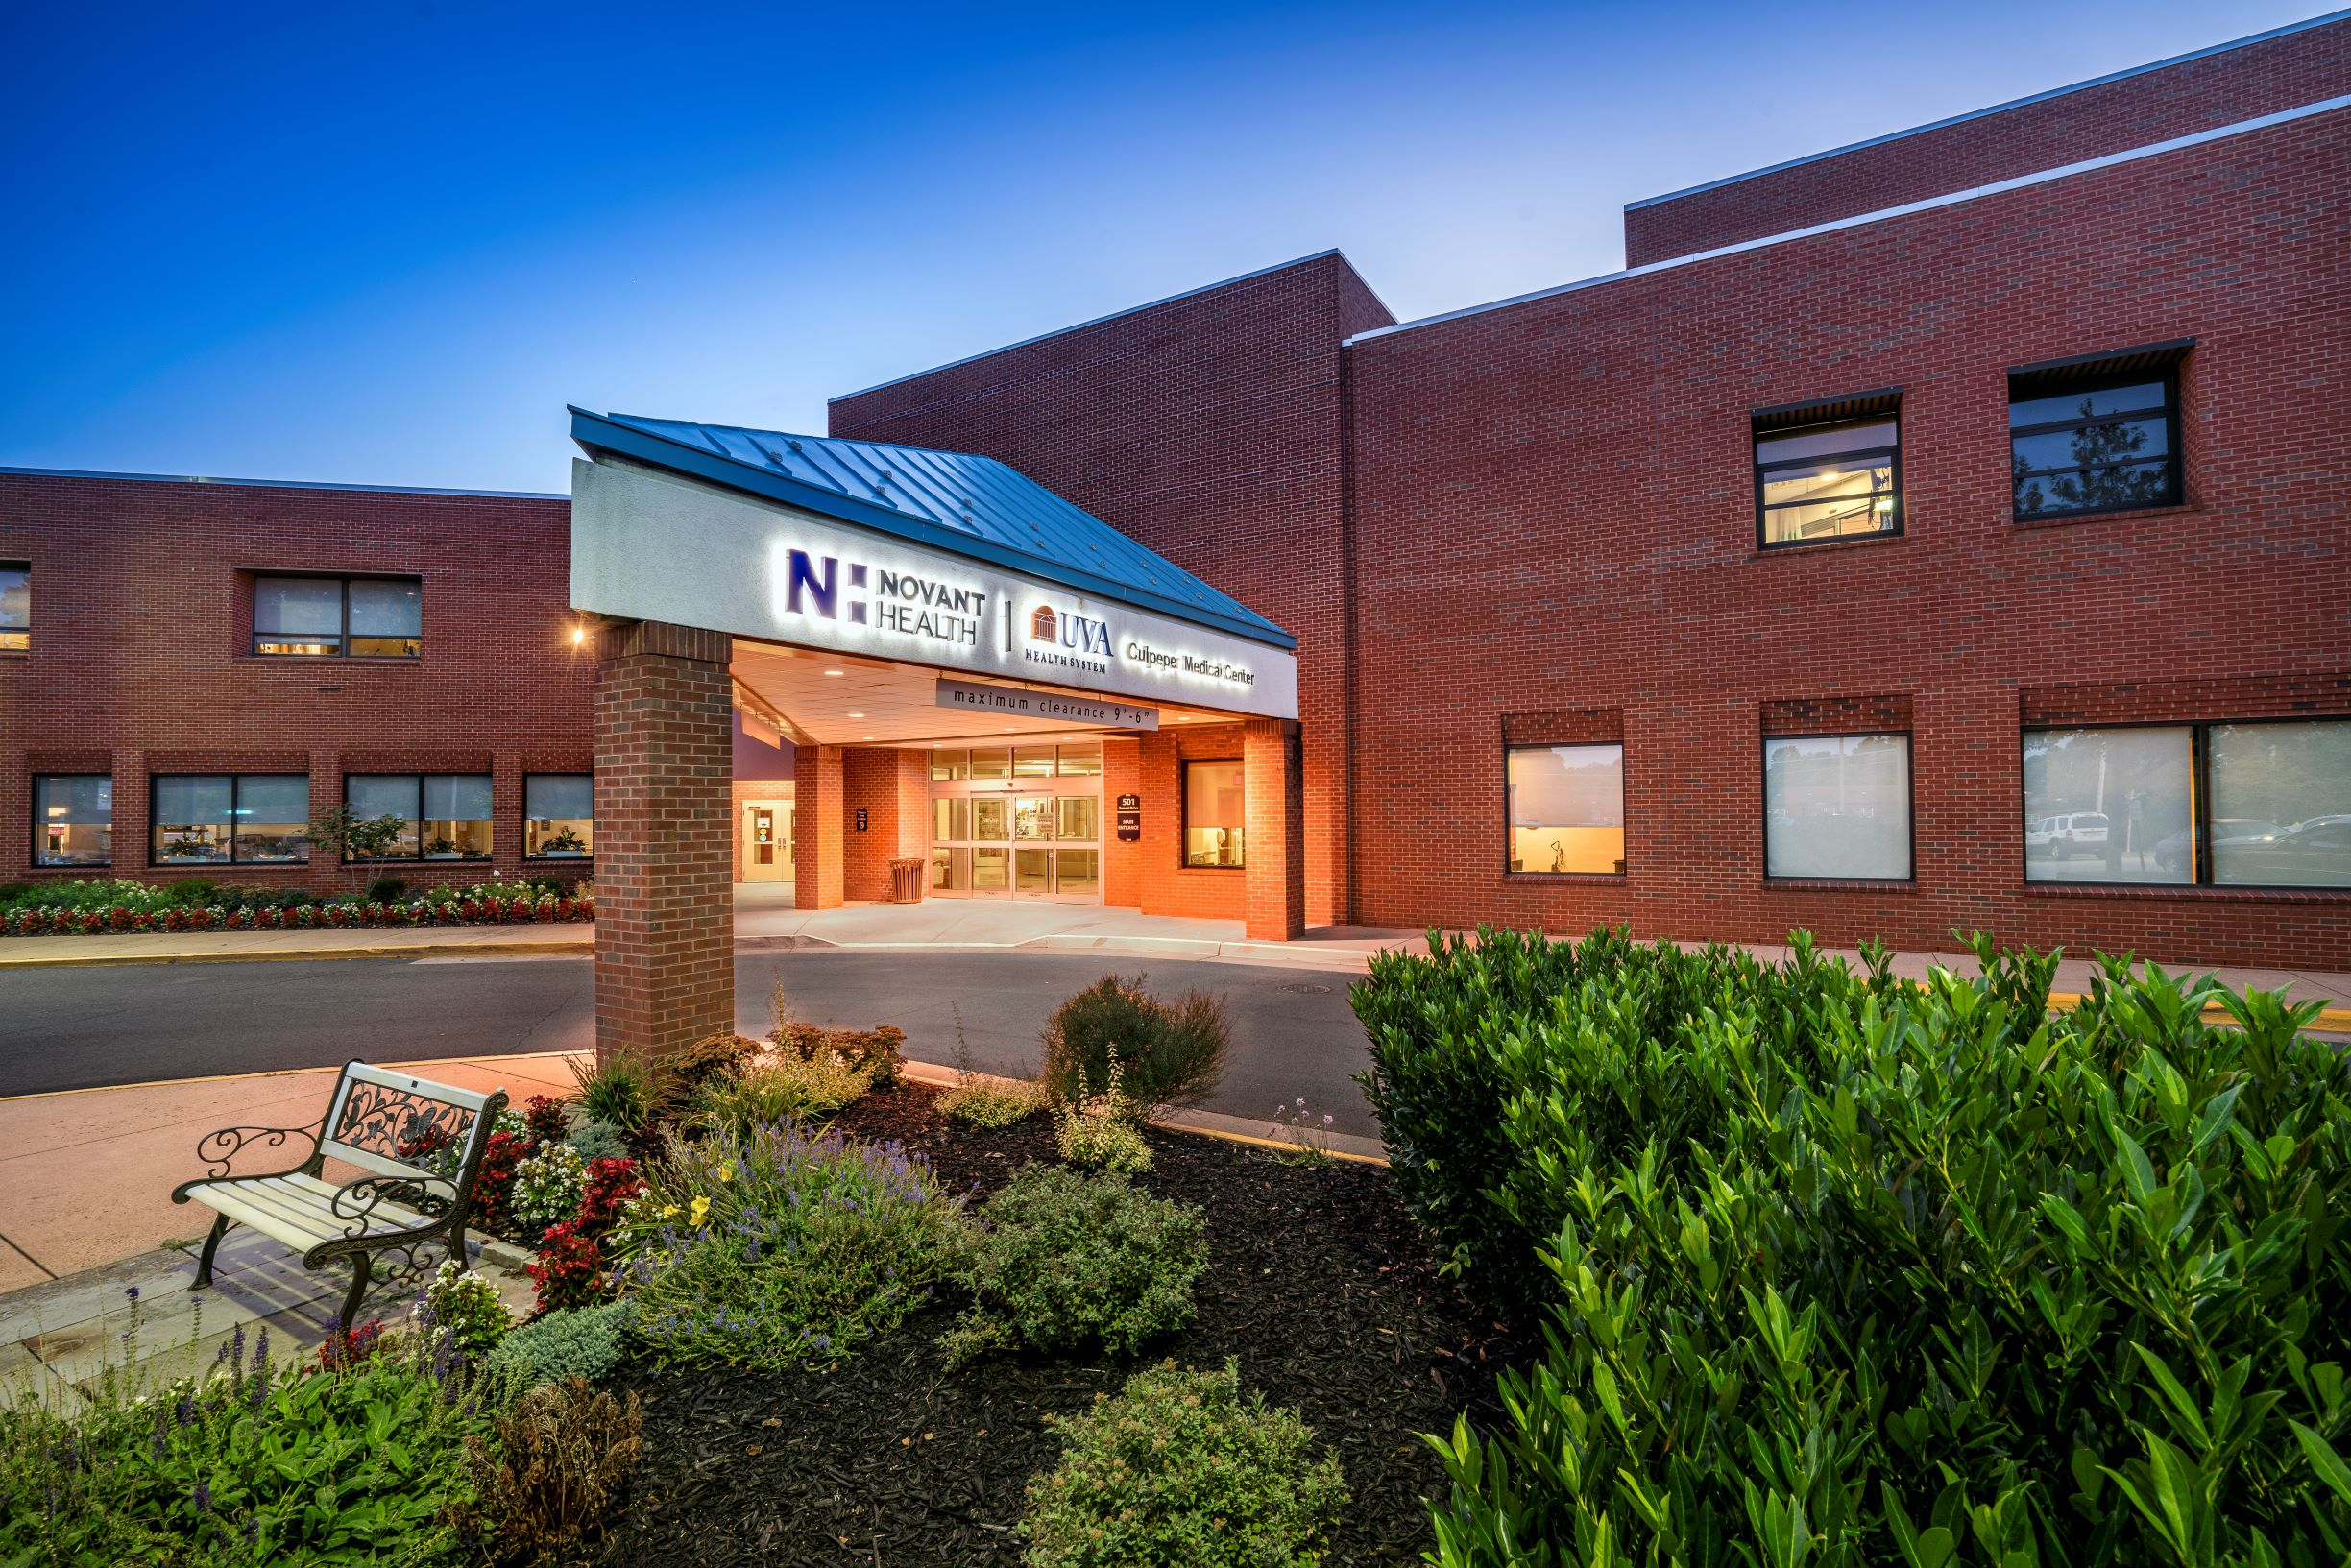 Novant Health UVA Health System Culpeper Medical Center services